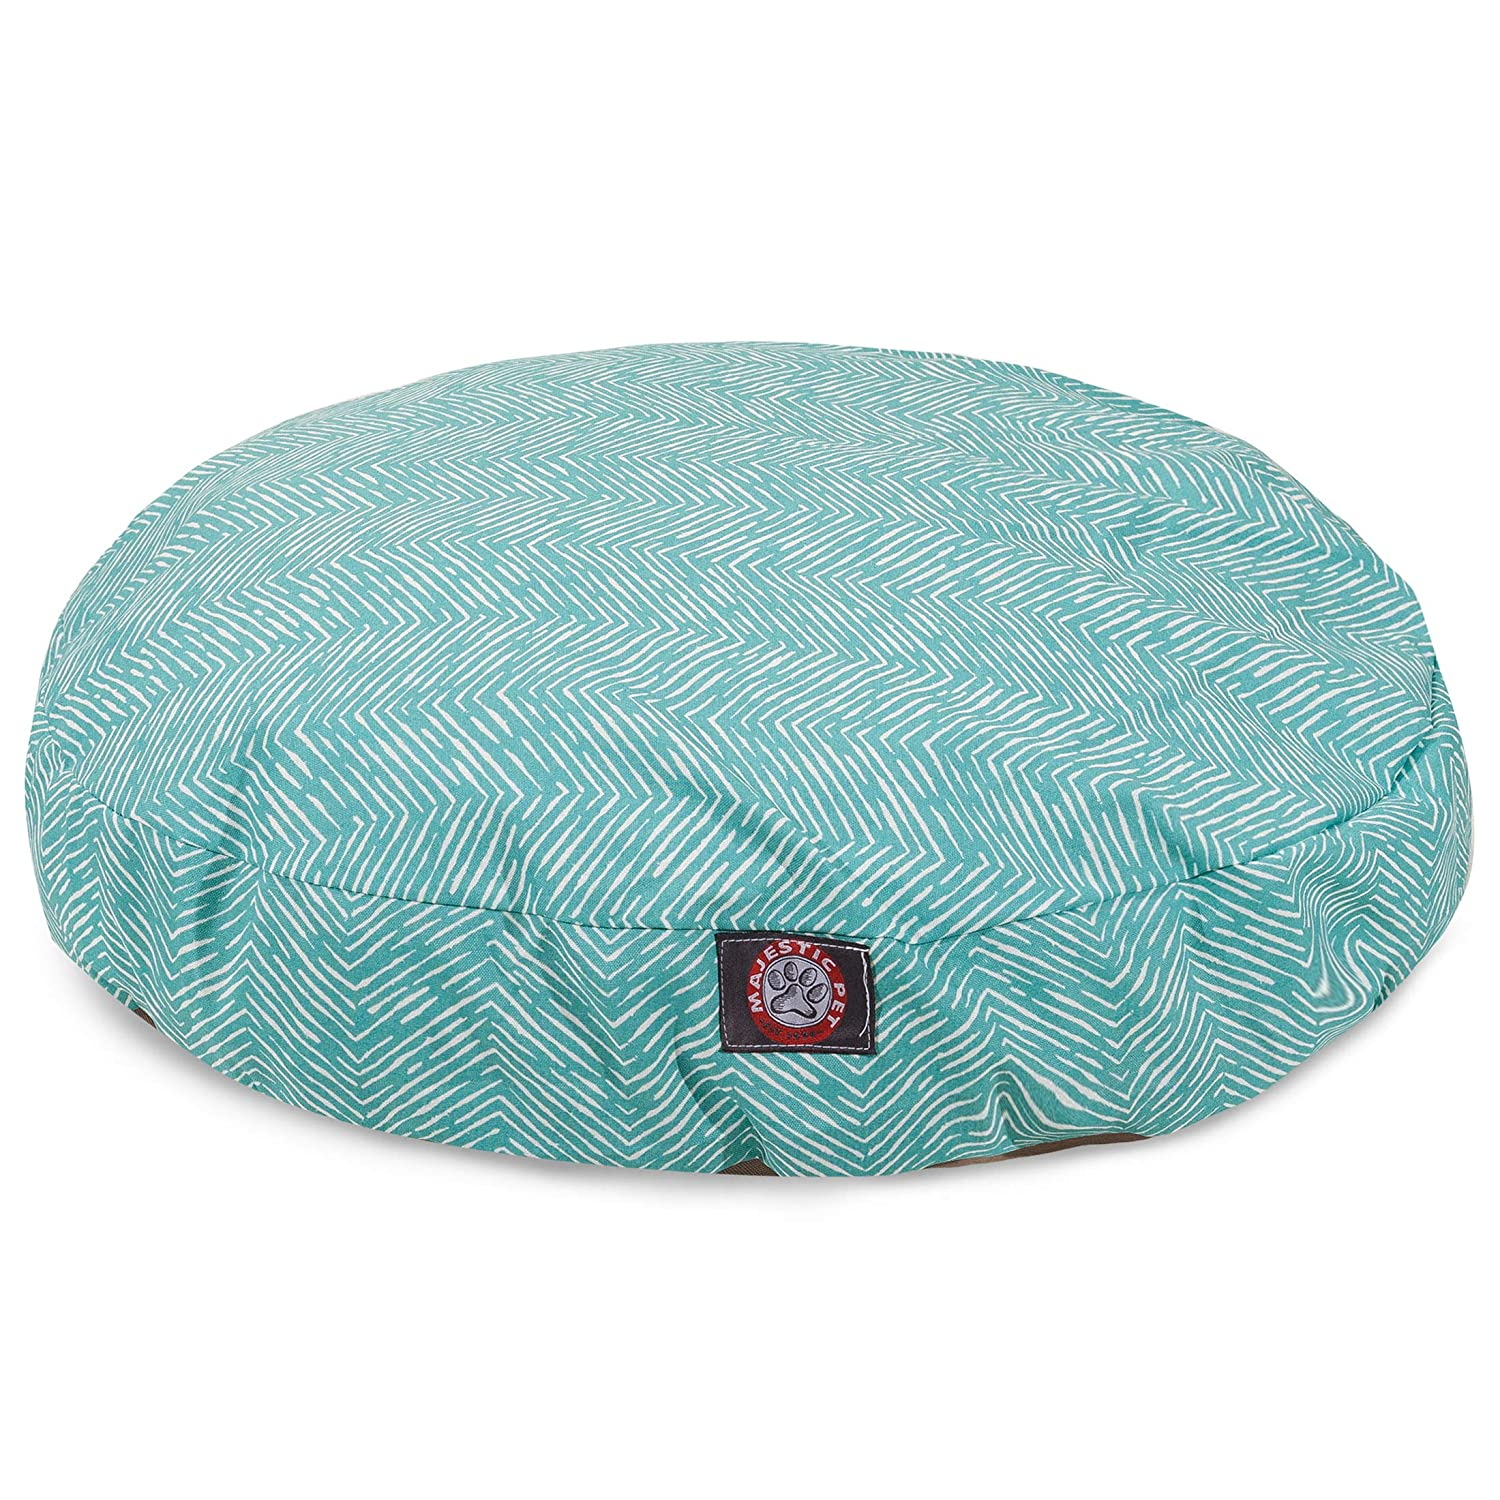 Teal Native Small Round Indoor Outdoor Pet Dog Bed with Removable Washable Cover by Majestic Pet Products